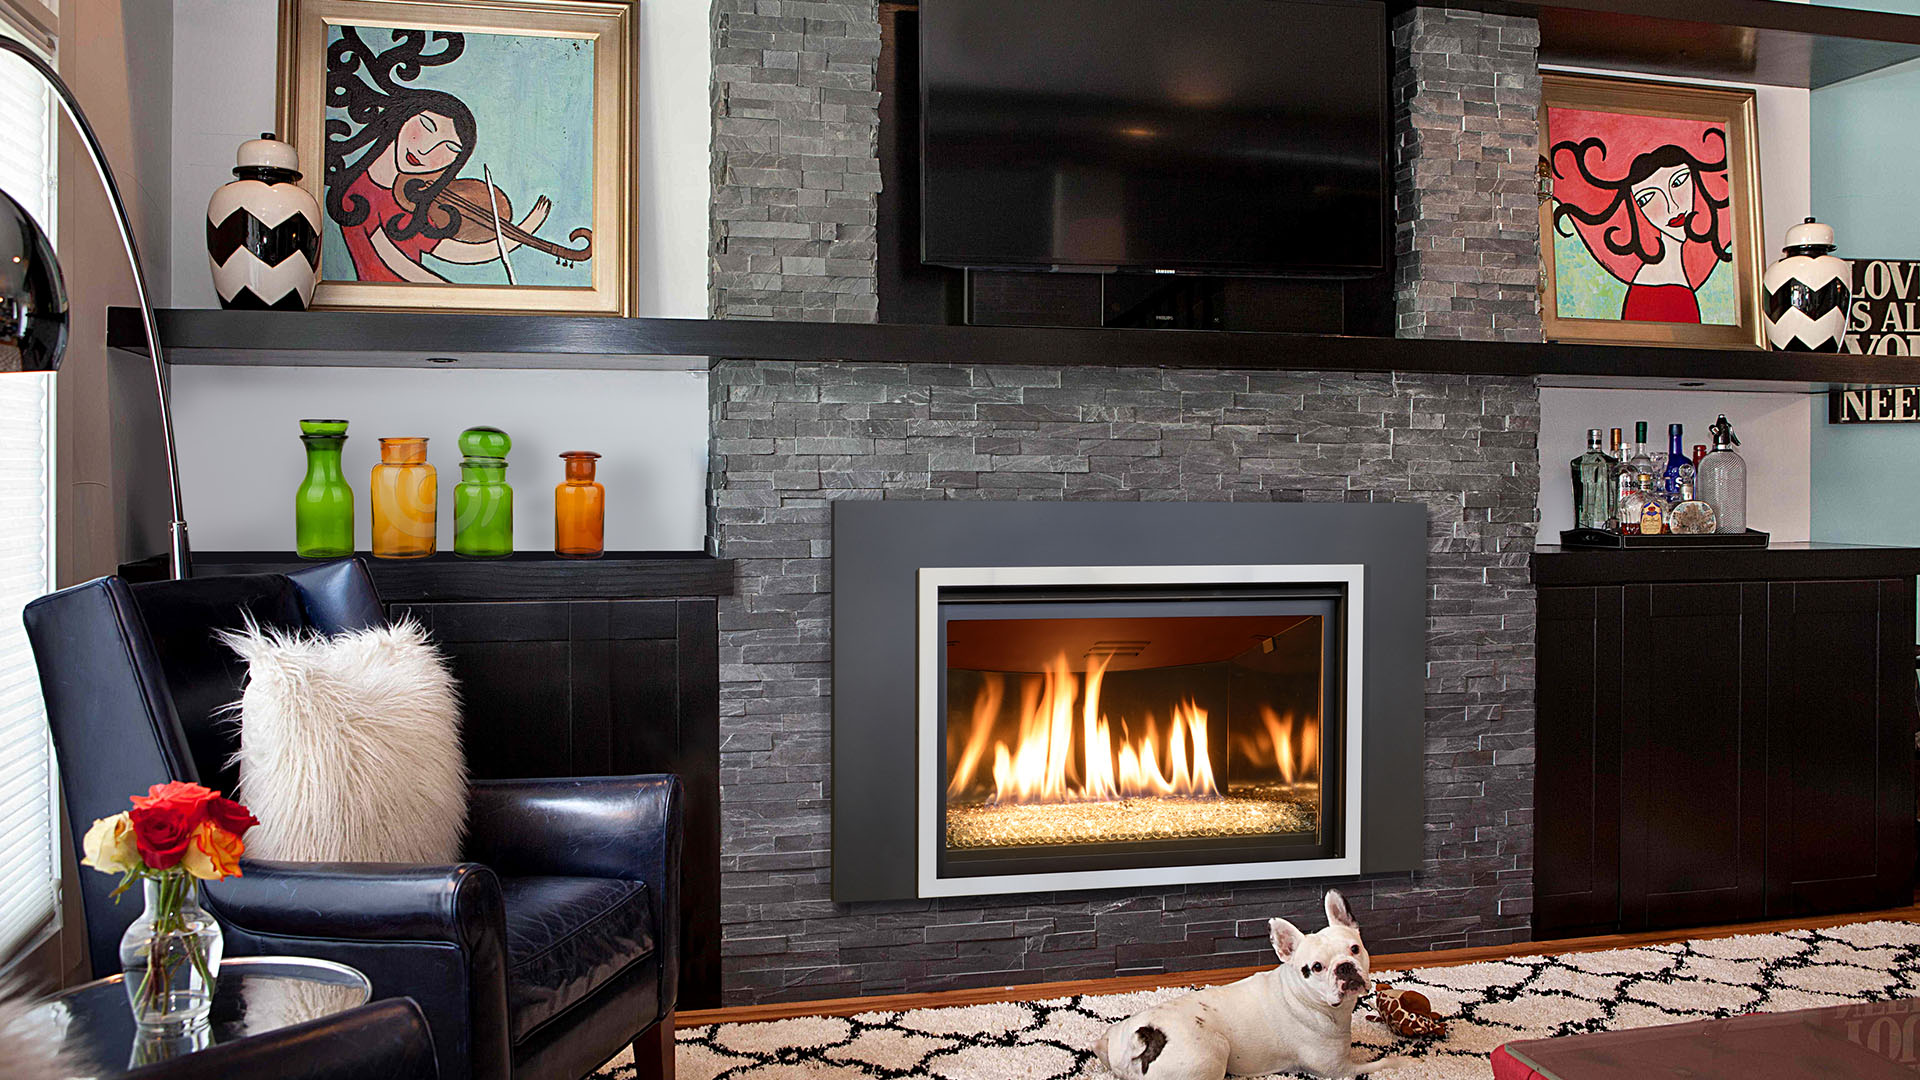 superior brands of fireplaces and inserts to customize your denver home